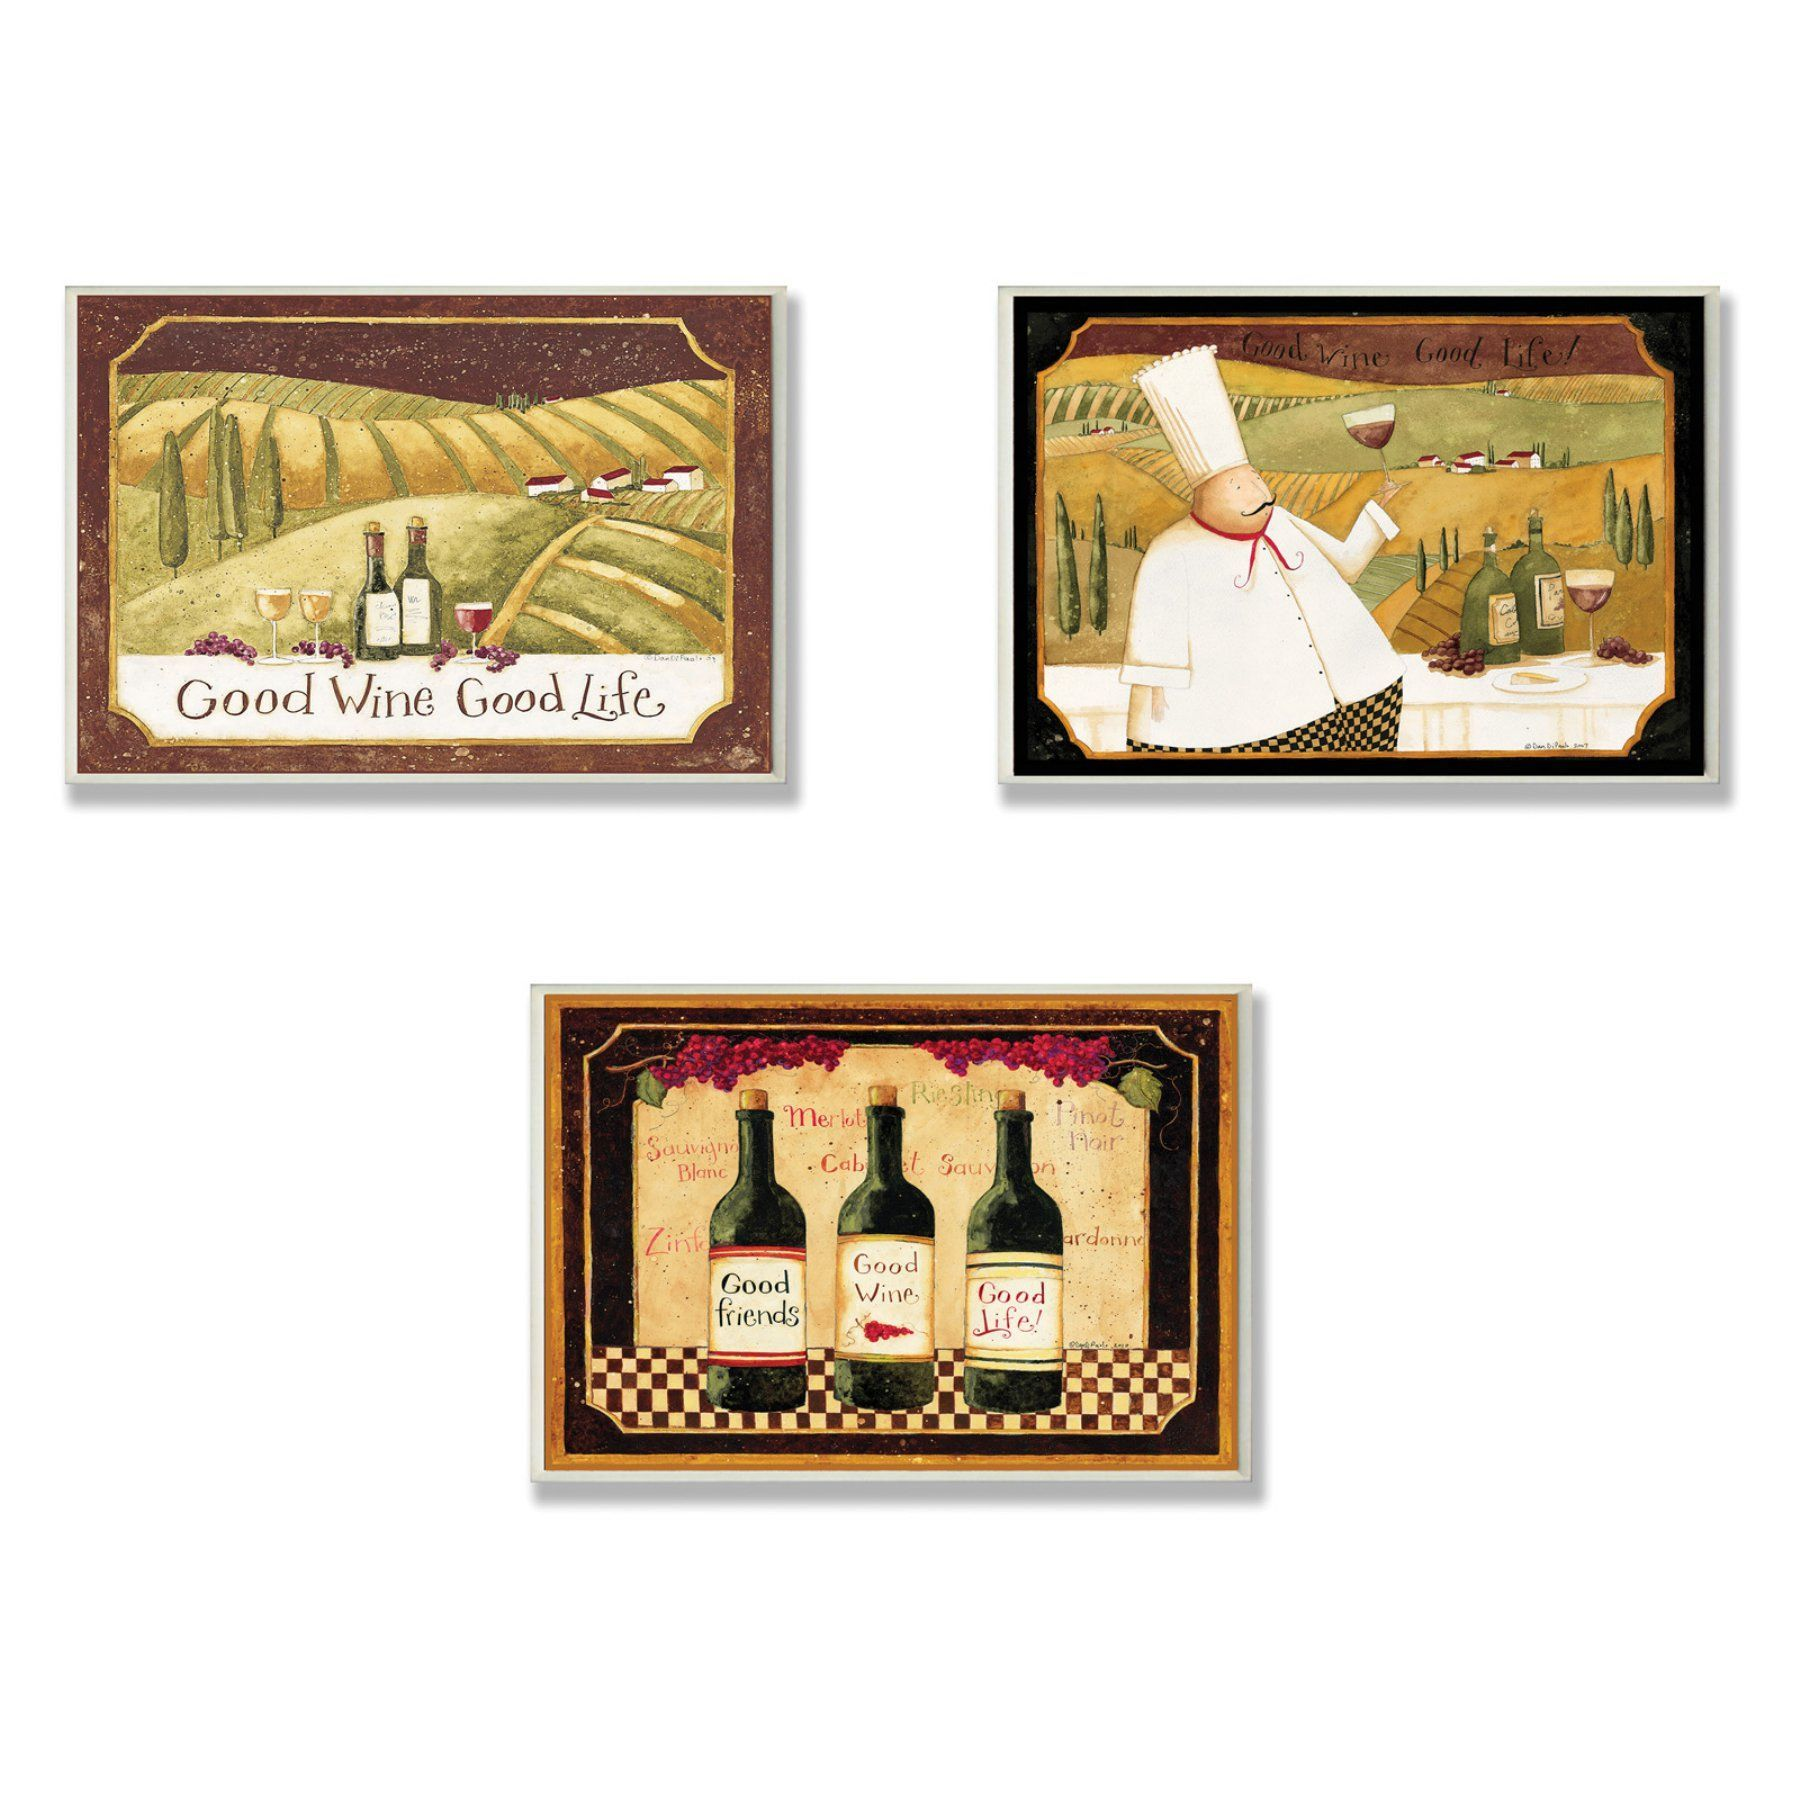 Stupell industries good friends wine and life kitchen wall plaque